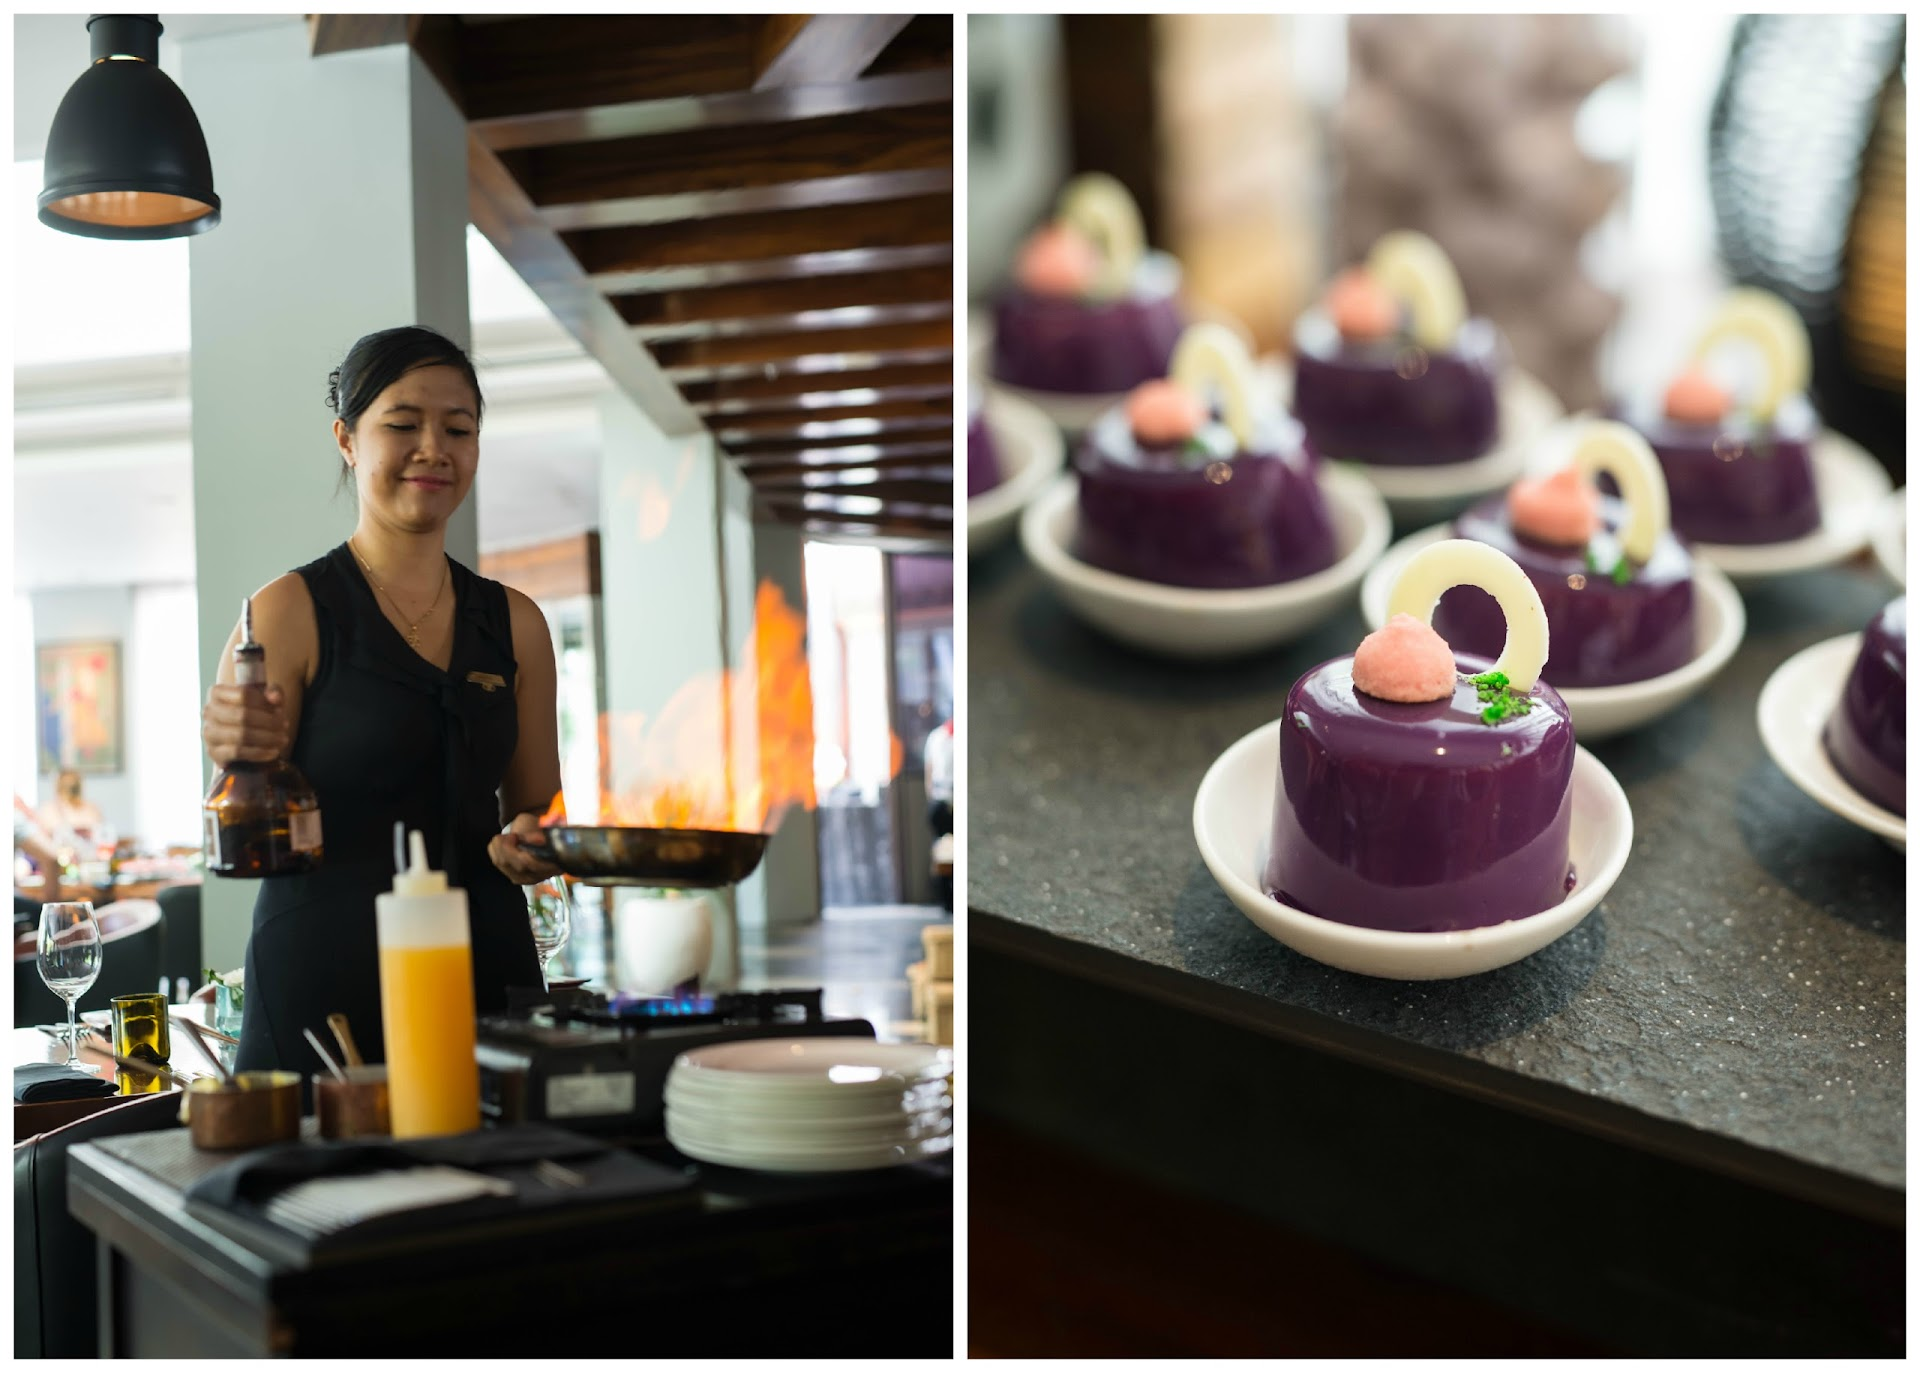 sofitel nusa dua review, best restaurants in bali, what to eat, crepes suzette, french pastries, best buffets in the world, brunch